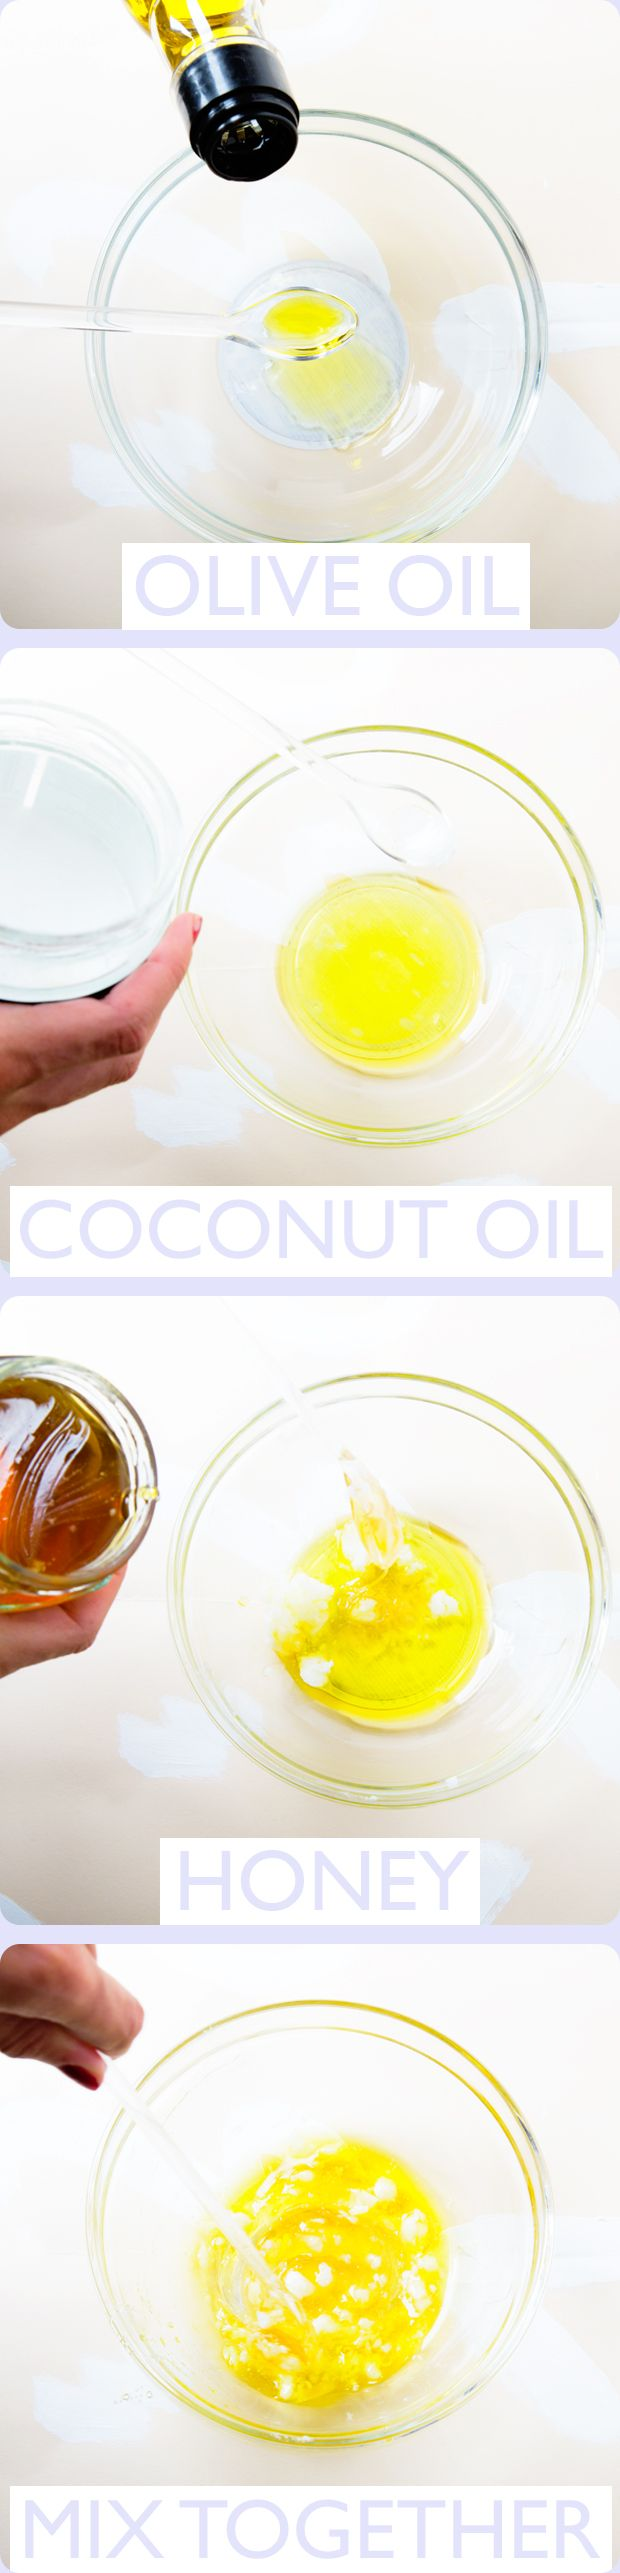 Achieve healthy locks with this DIY Hair Repair Mask